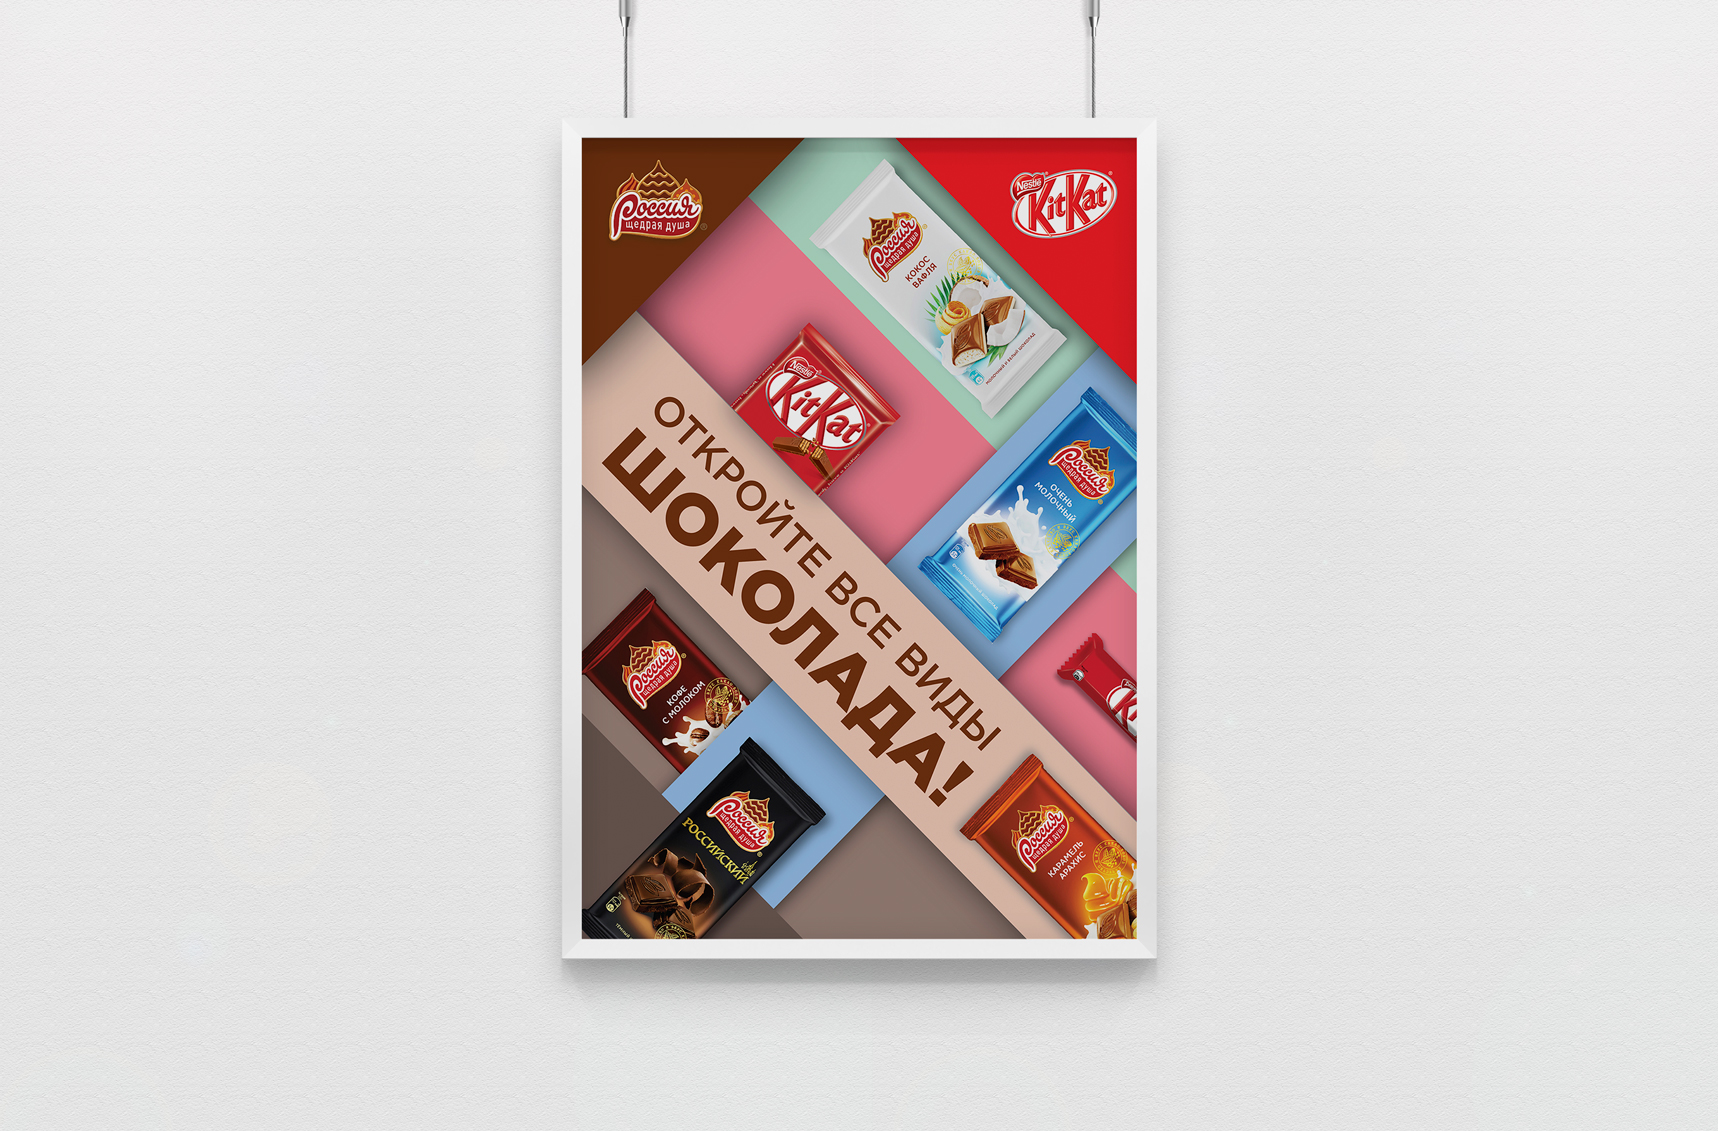 New_confectionery_RshD_Kitkat_v2_1